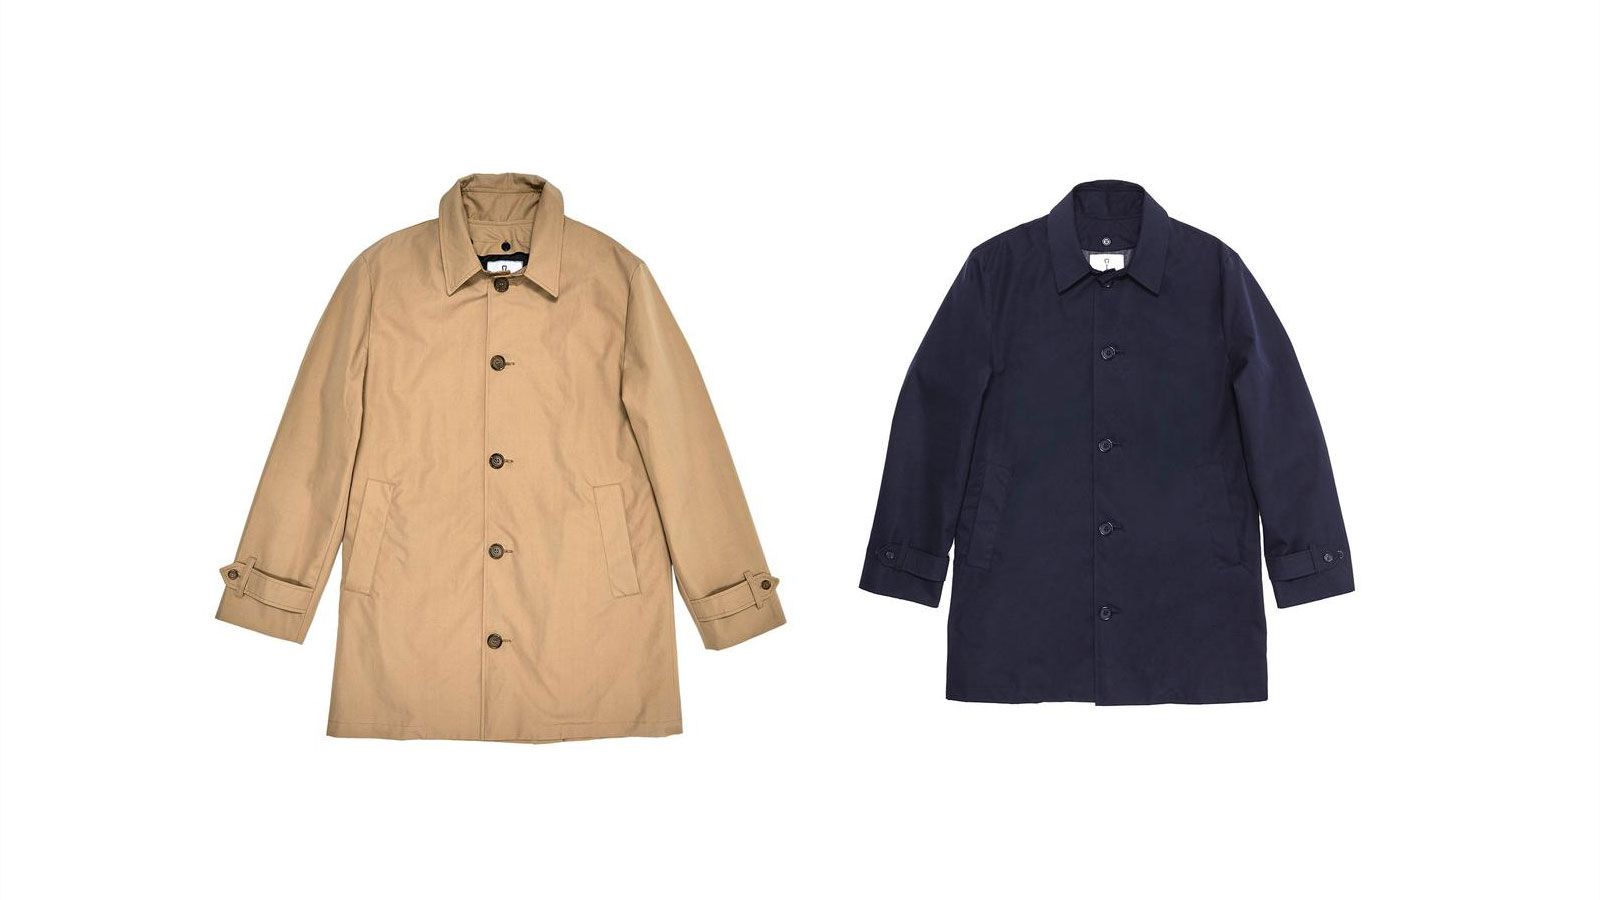 American Trench Mens Trench Coat   The Best Men's Trench Coats